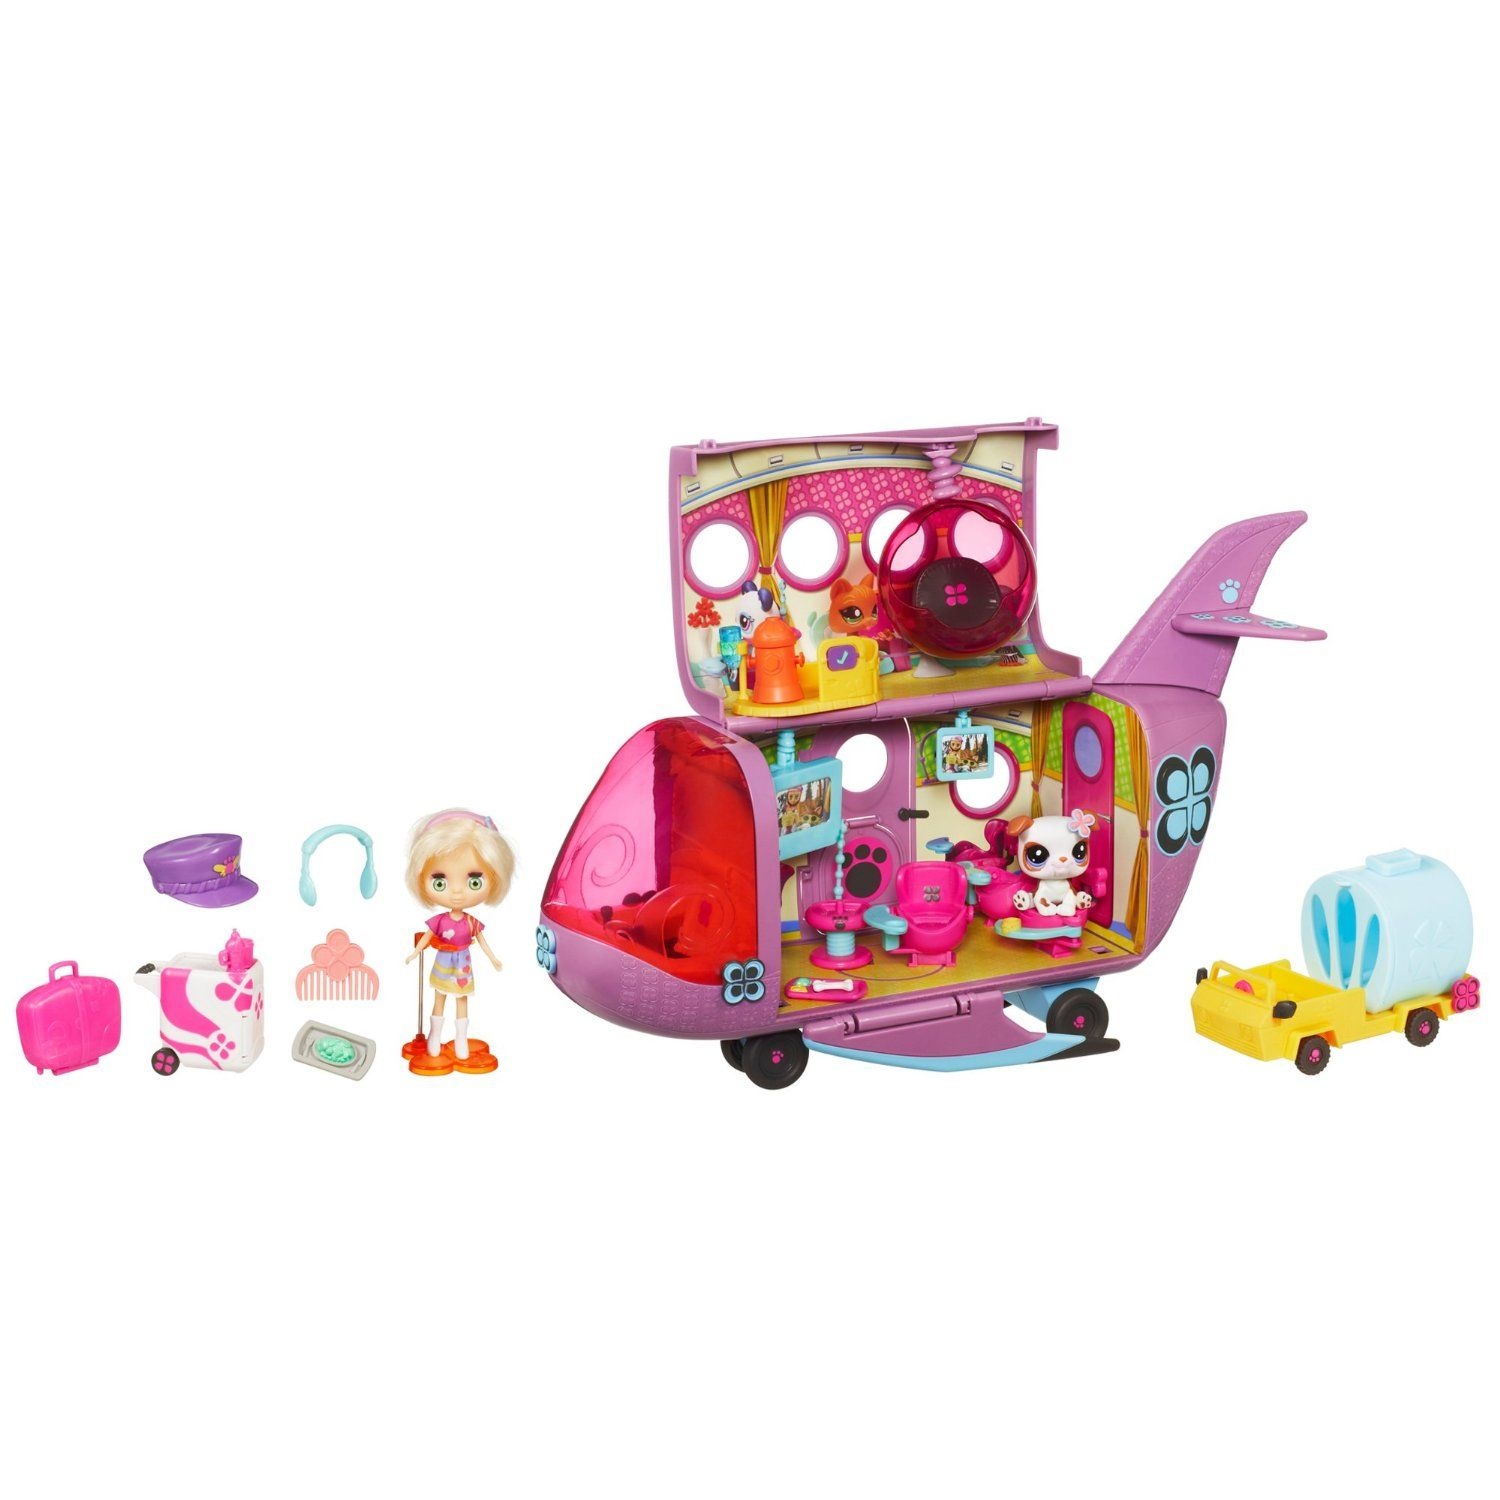 Extremely Hard To Find Littlest Pet Shop Jet Amazon Com Littlest Pet Shop Jet Toys Games Little Pet Shop Toys Littlest Pet Shop Little Pets